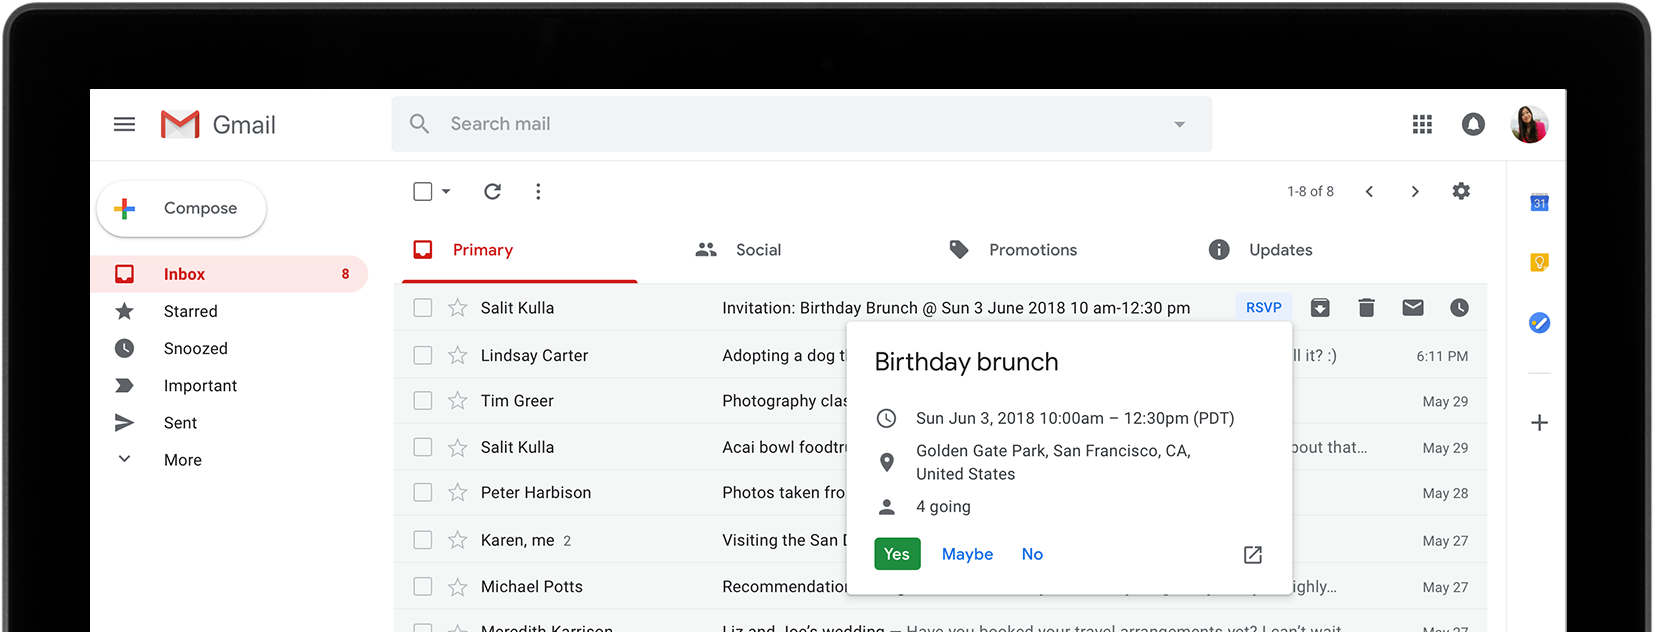 Gmail Free Storage And Email From Google